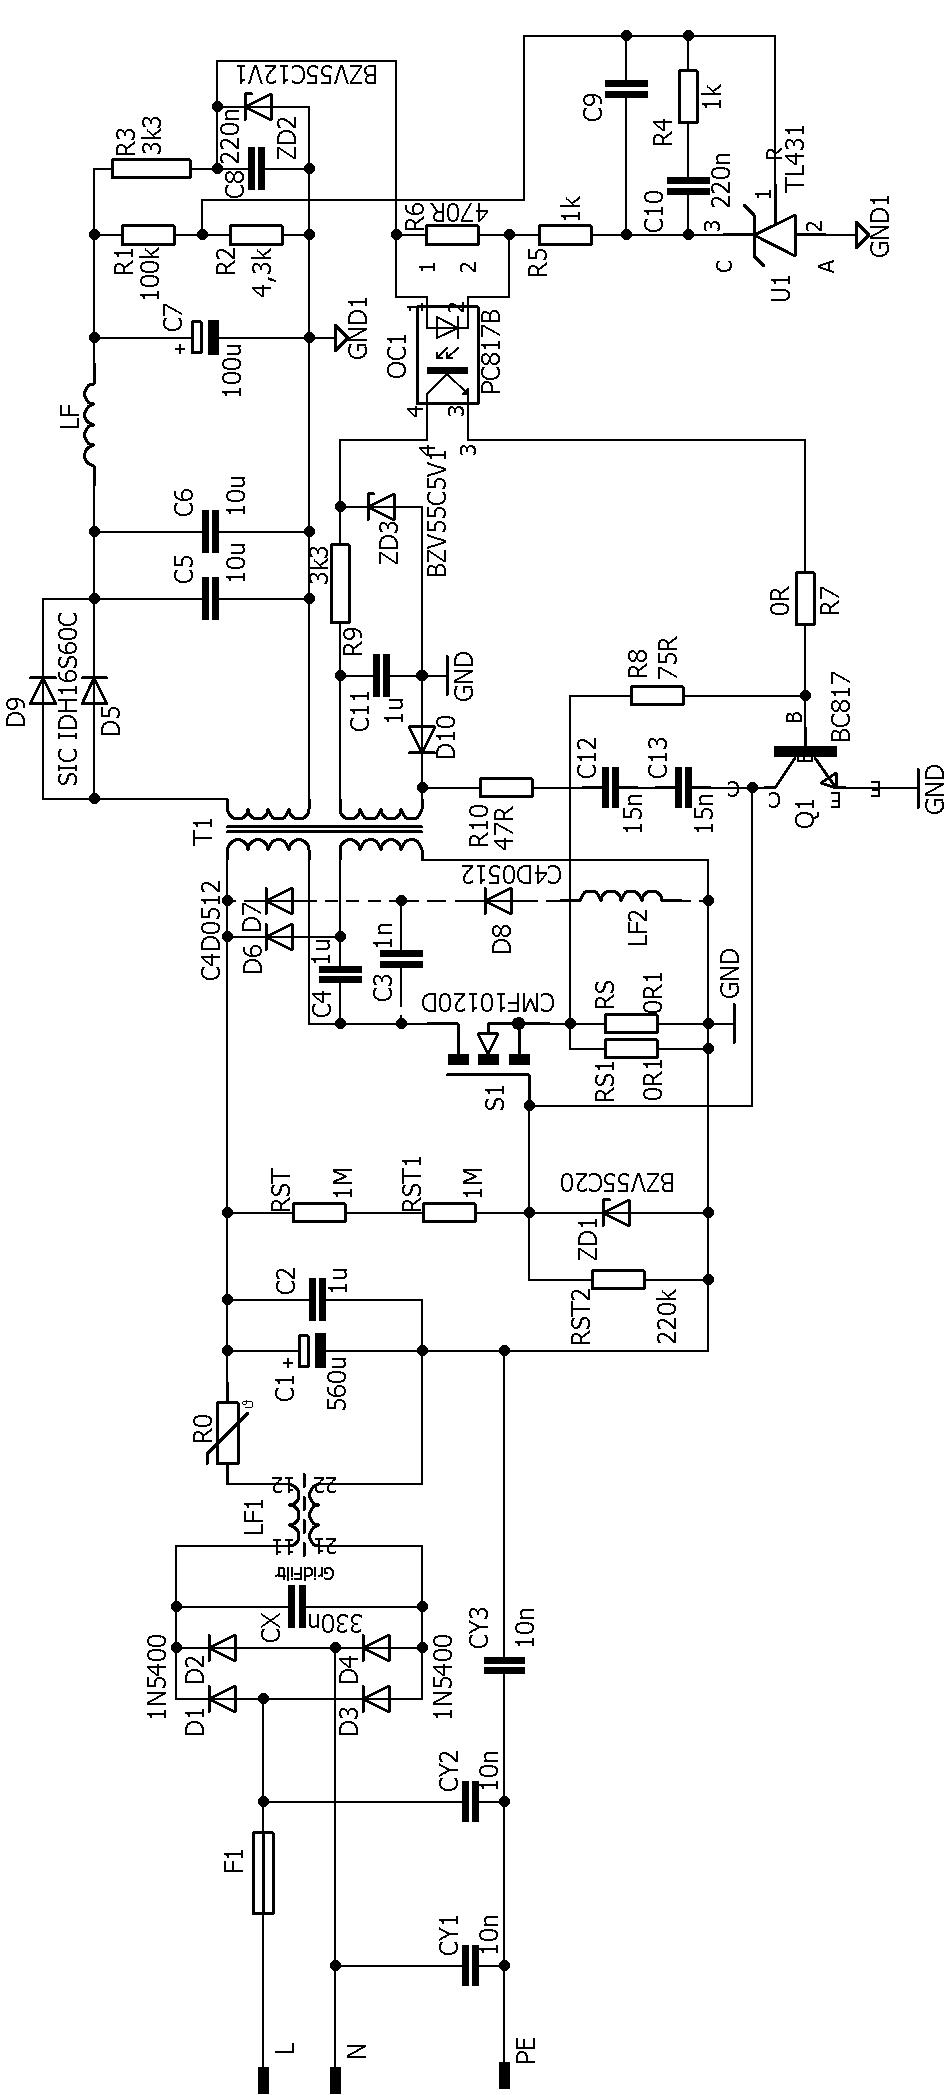 small resolution of self oscillating smps circuit flyback 600w 60v 120khz 600w smps circuit schematic self oscillating smps 120x120